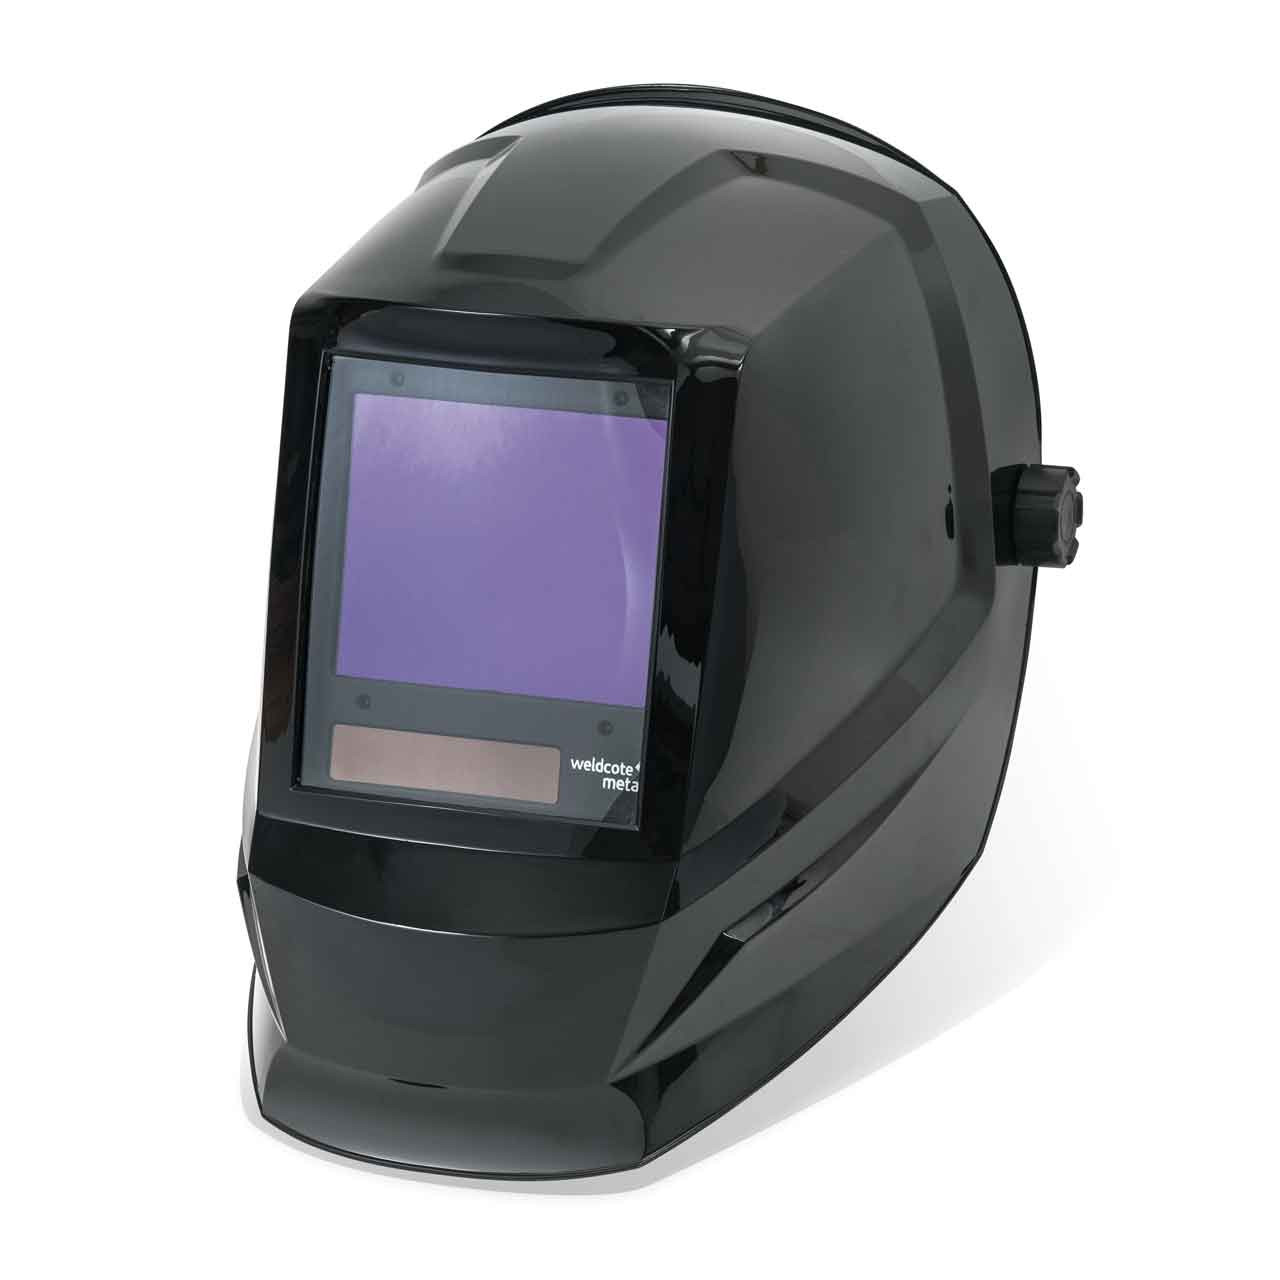 Weldcote Metals Ultraview Plus True Color Digital Auto Darkening Welding Helmet Shade 9 13